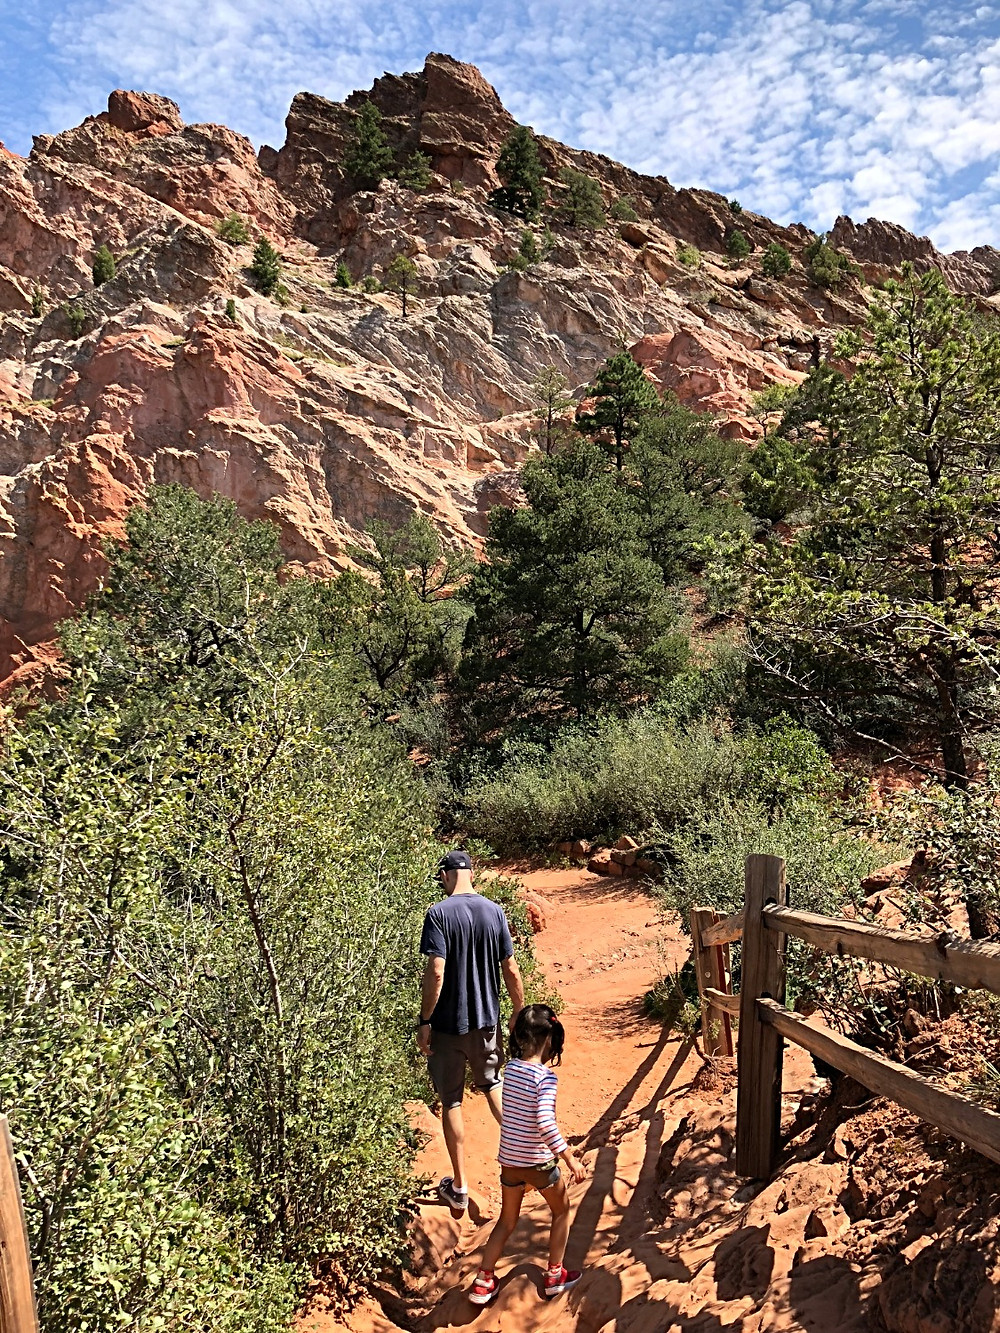 Curious G and Me, Garden of the Gods with kids, family travel, Colorado with kids, hiking with kids, rock climbing with kids, amazing scenery, best family vacations, family adventures, Colorado for families